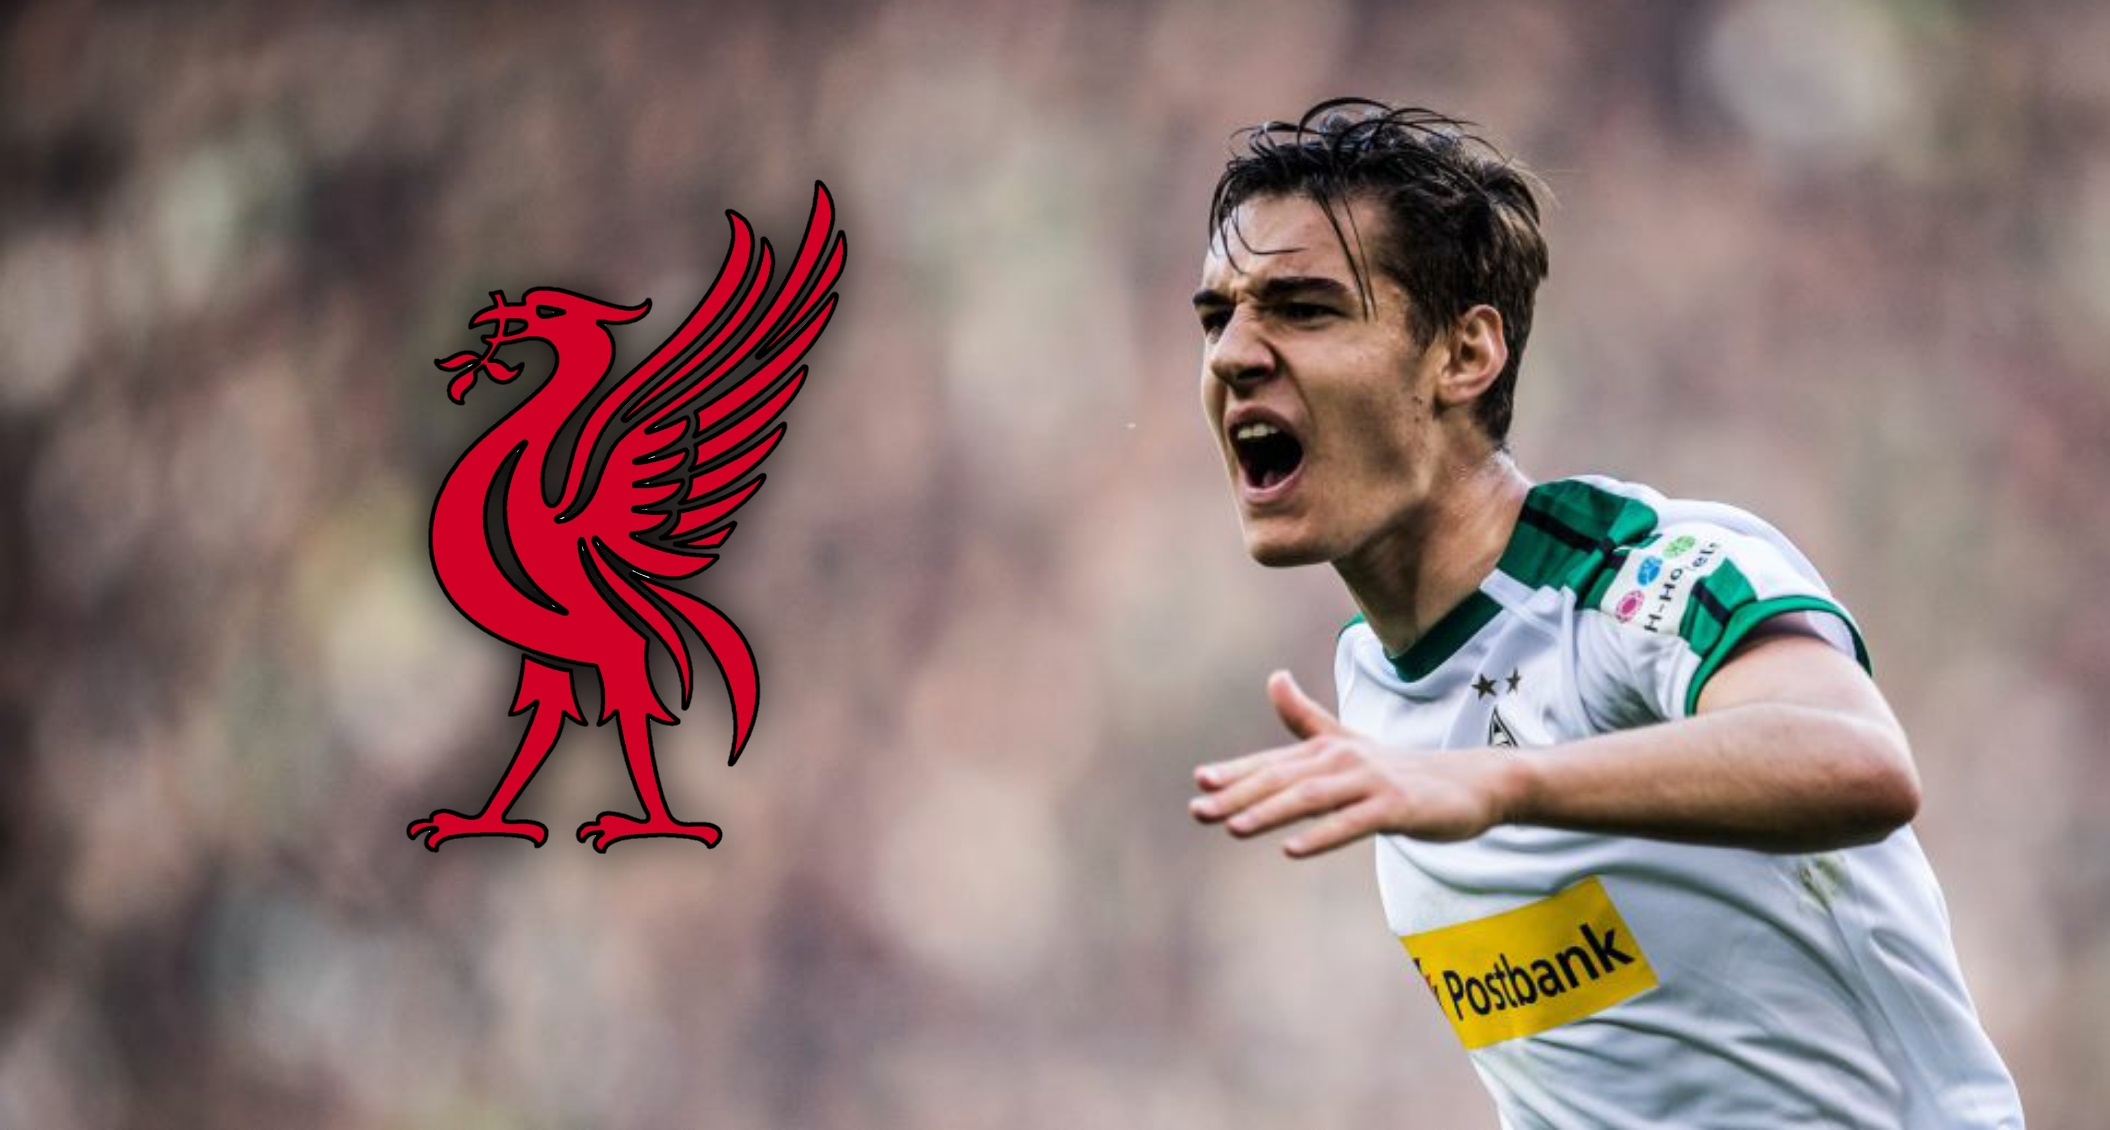 Liverpool-linked midfielder set for €40m Bayern Munich move – report